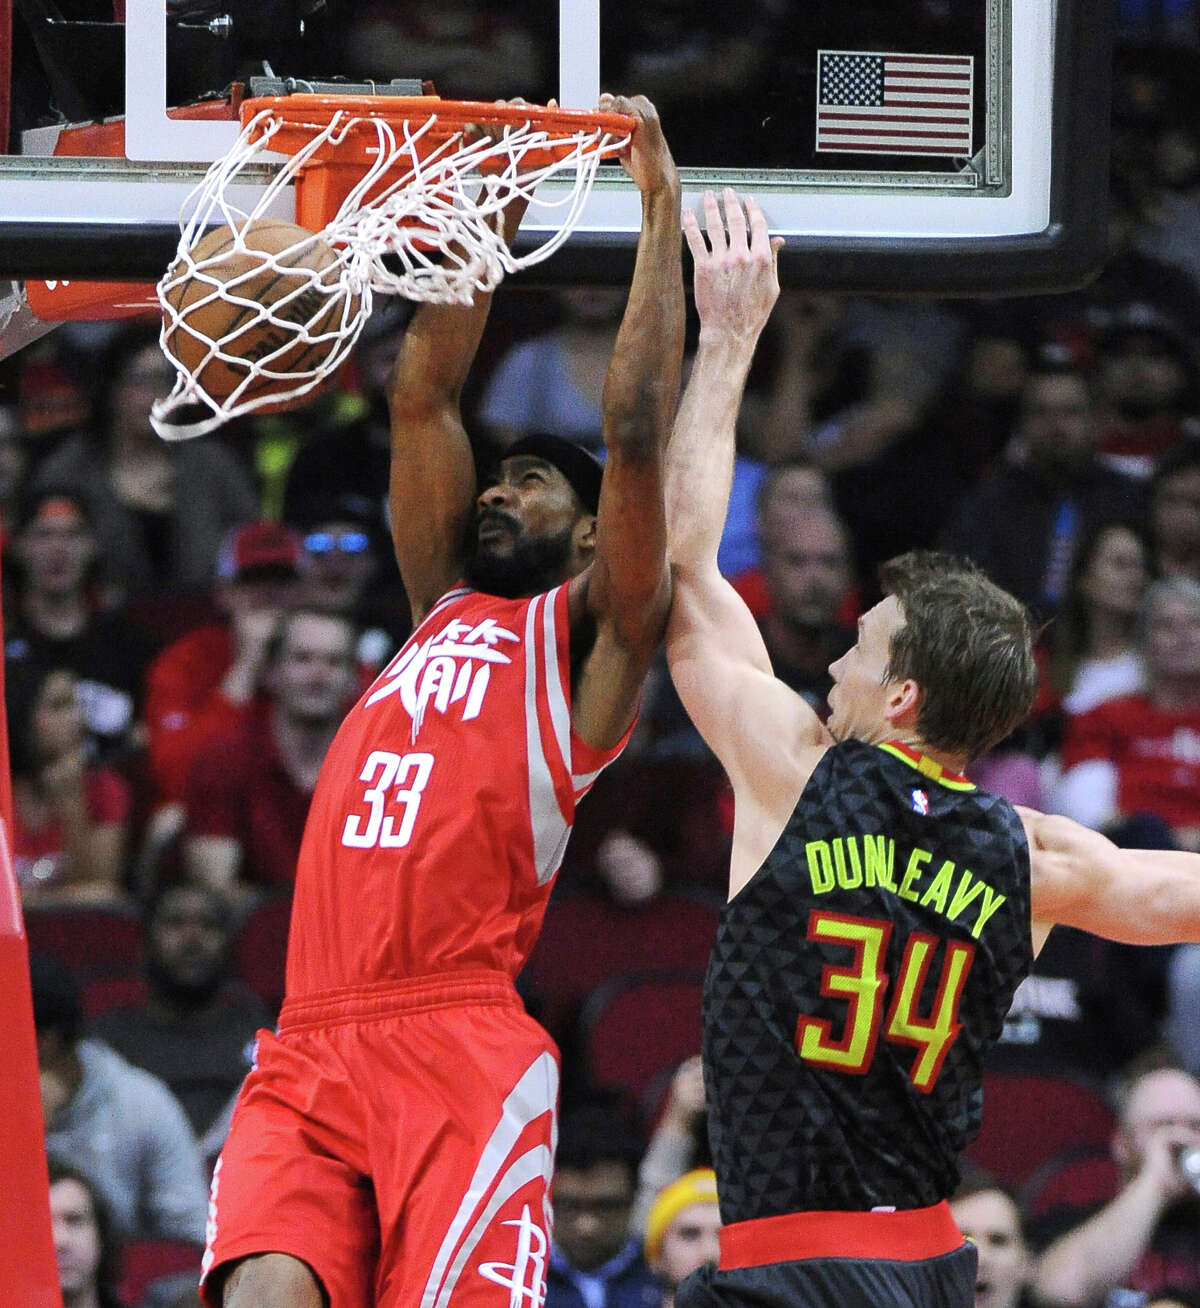 Houston Rockets guard Corey Brewer (33) dunks against Atlanta Hawks guard Mike Dunleavy (34) during the second half of an NBA basketball game Thursday, Feb. 2, 2017, in Houston. (AP Photo/George Bridges)